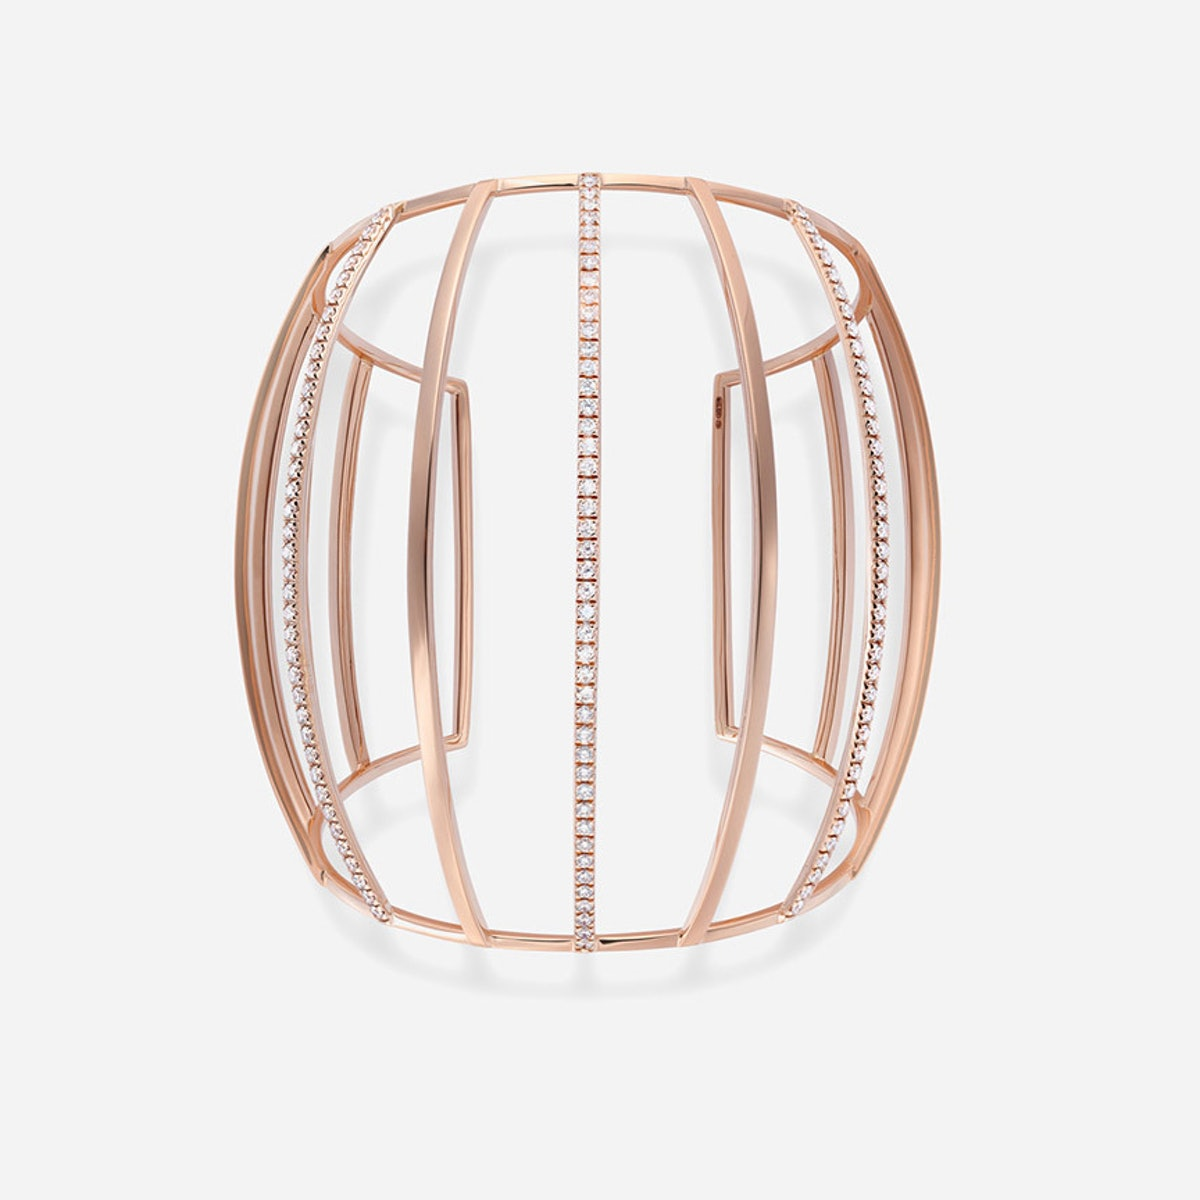 Dauphin Collection I Variation II cuff